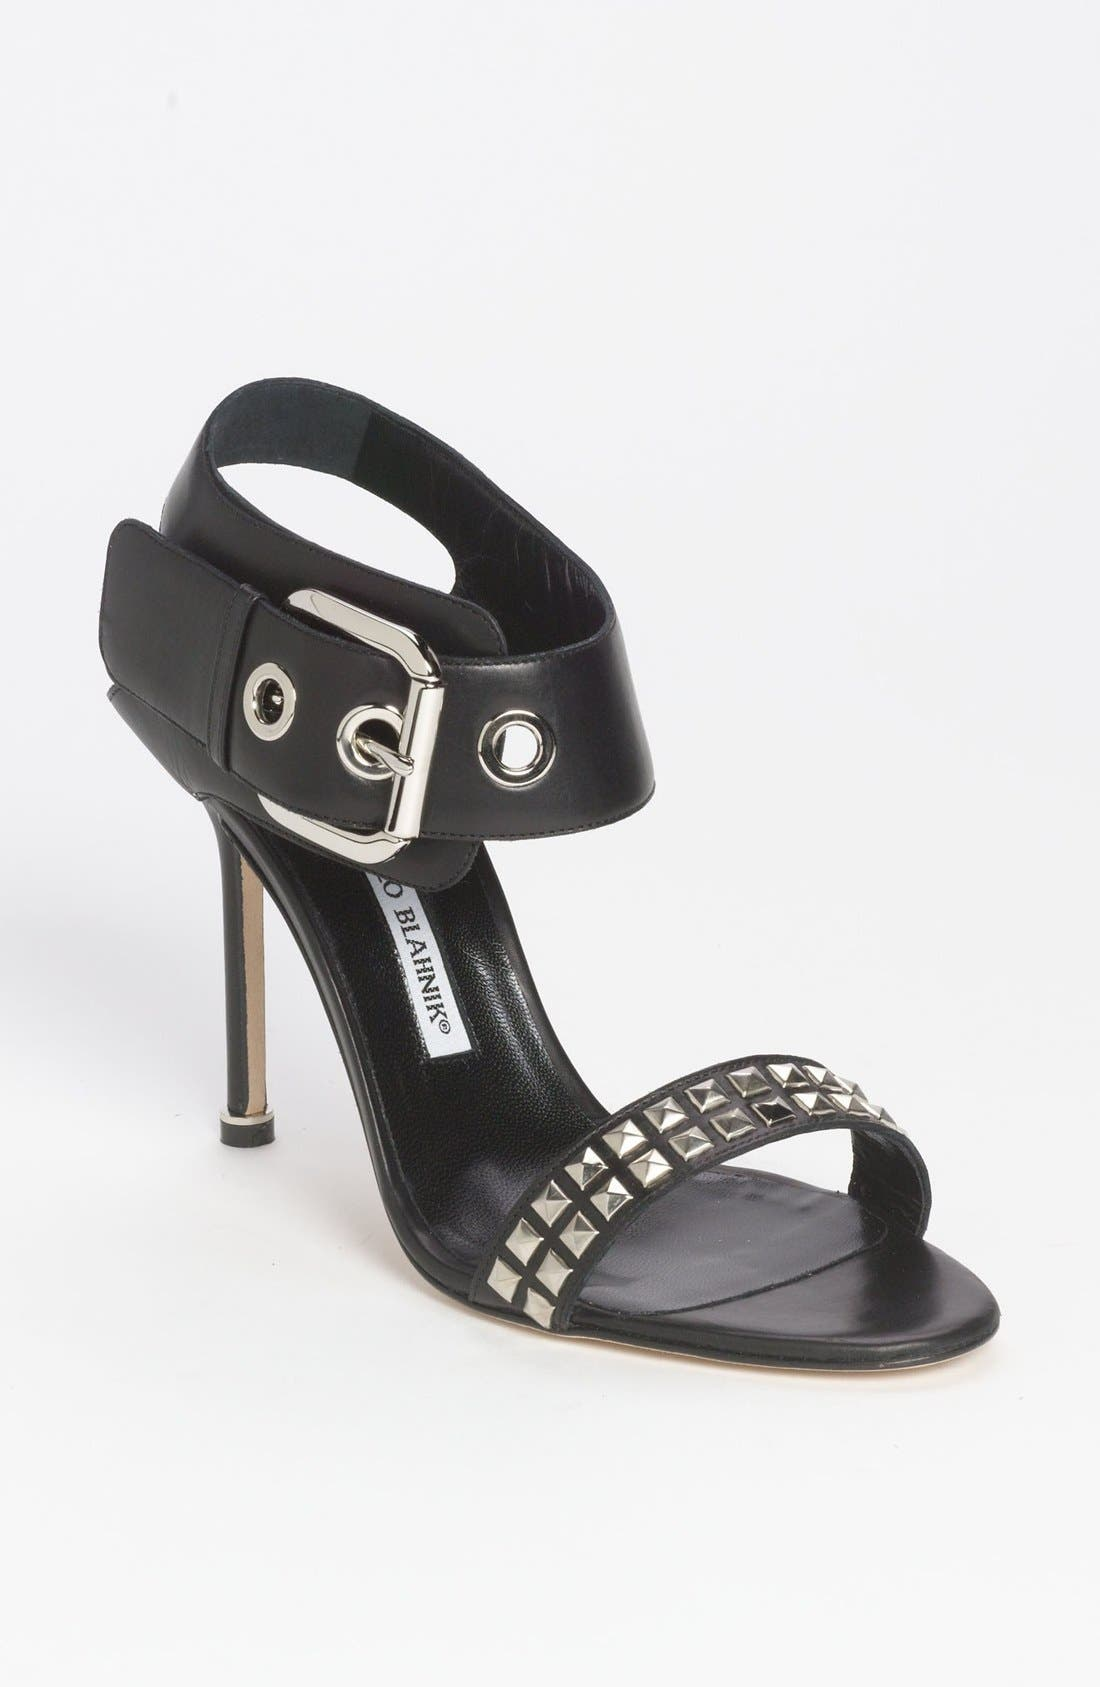 Alternate Image 1 Selected - Manolo Blahnik 'Koyro' Sandal